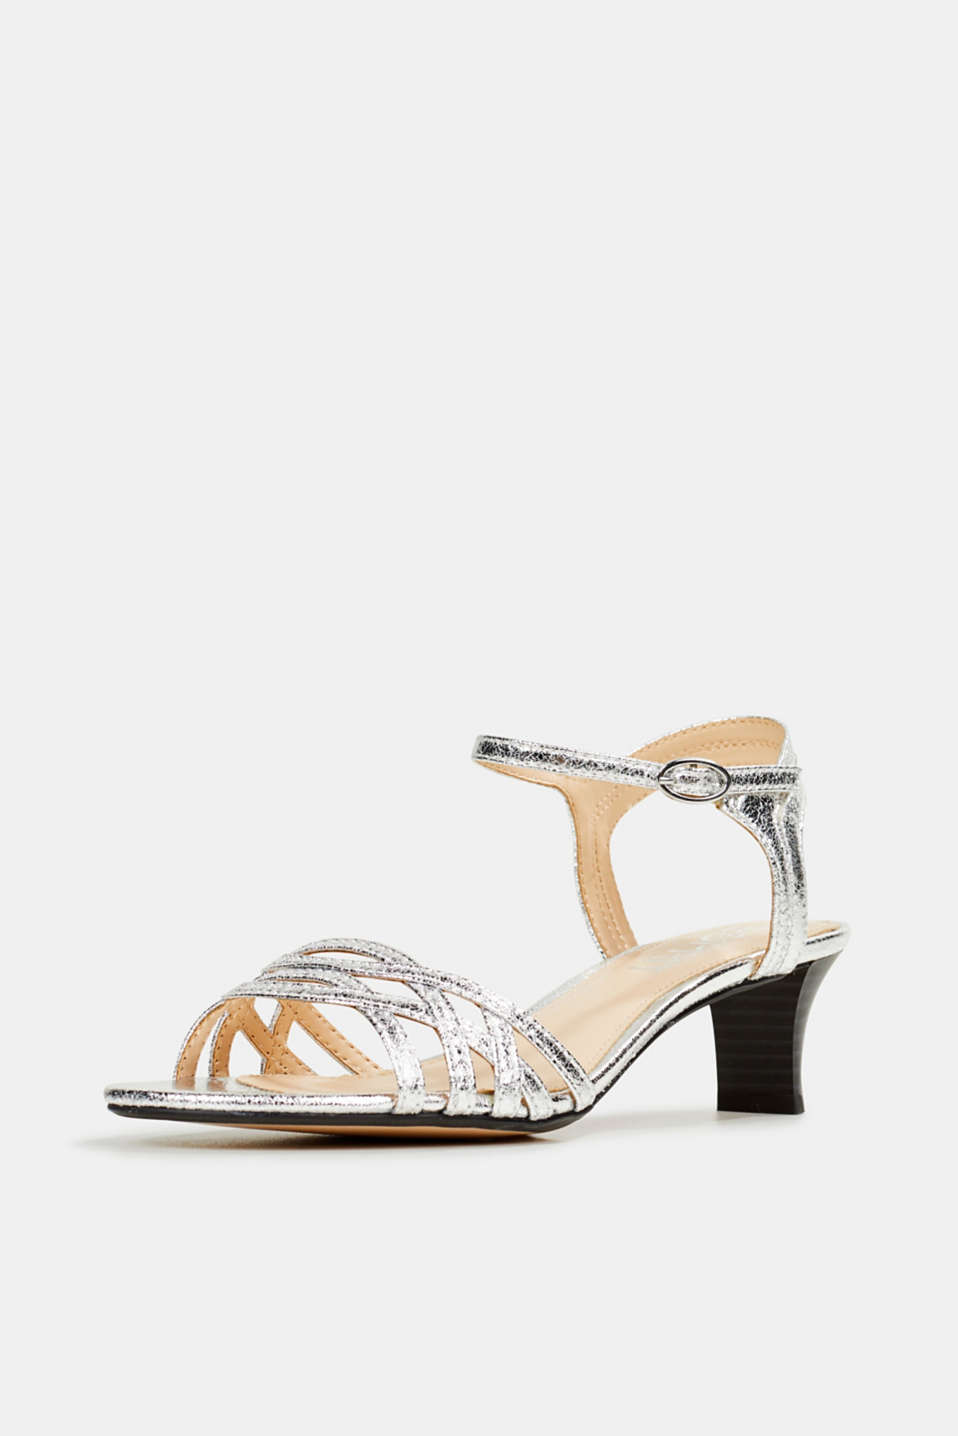 Sandals with straps in a braided look, SILVER, detail image number 2